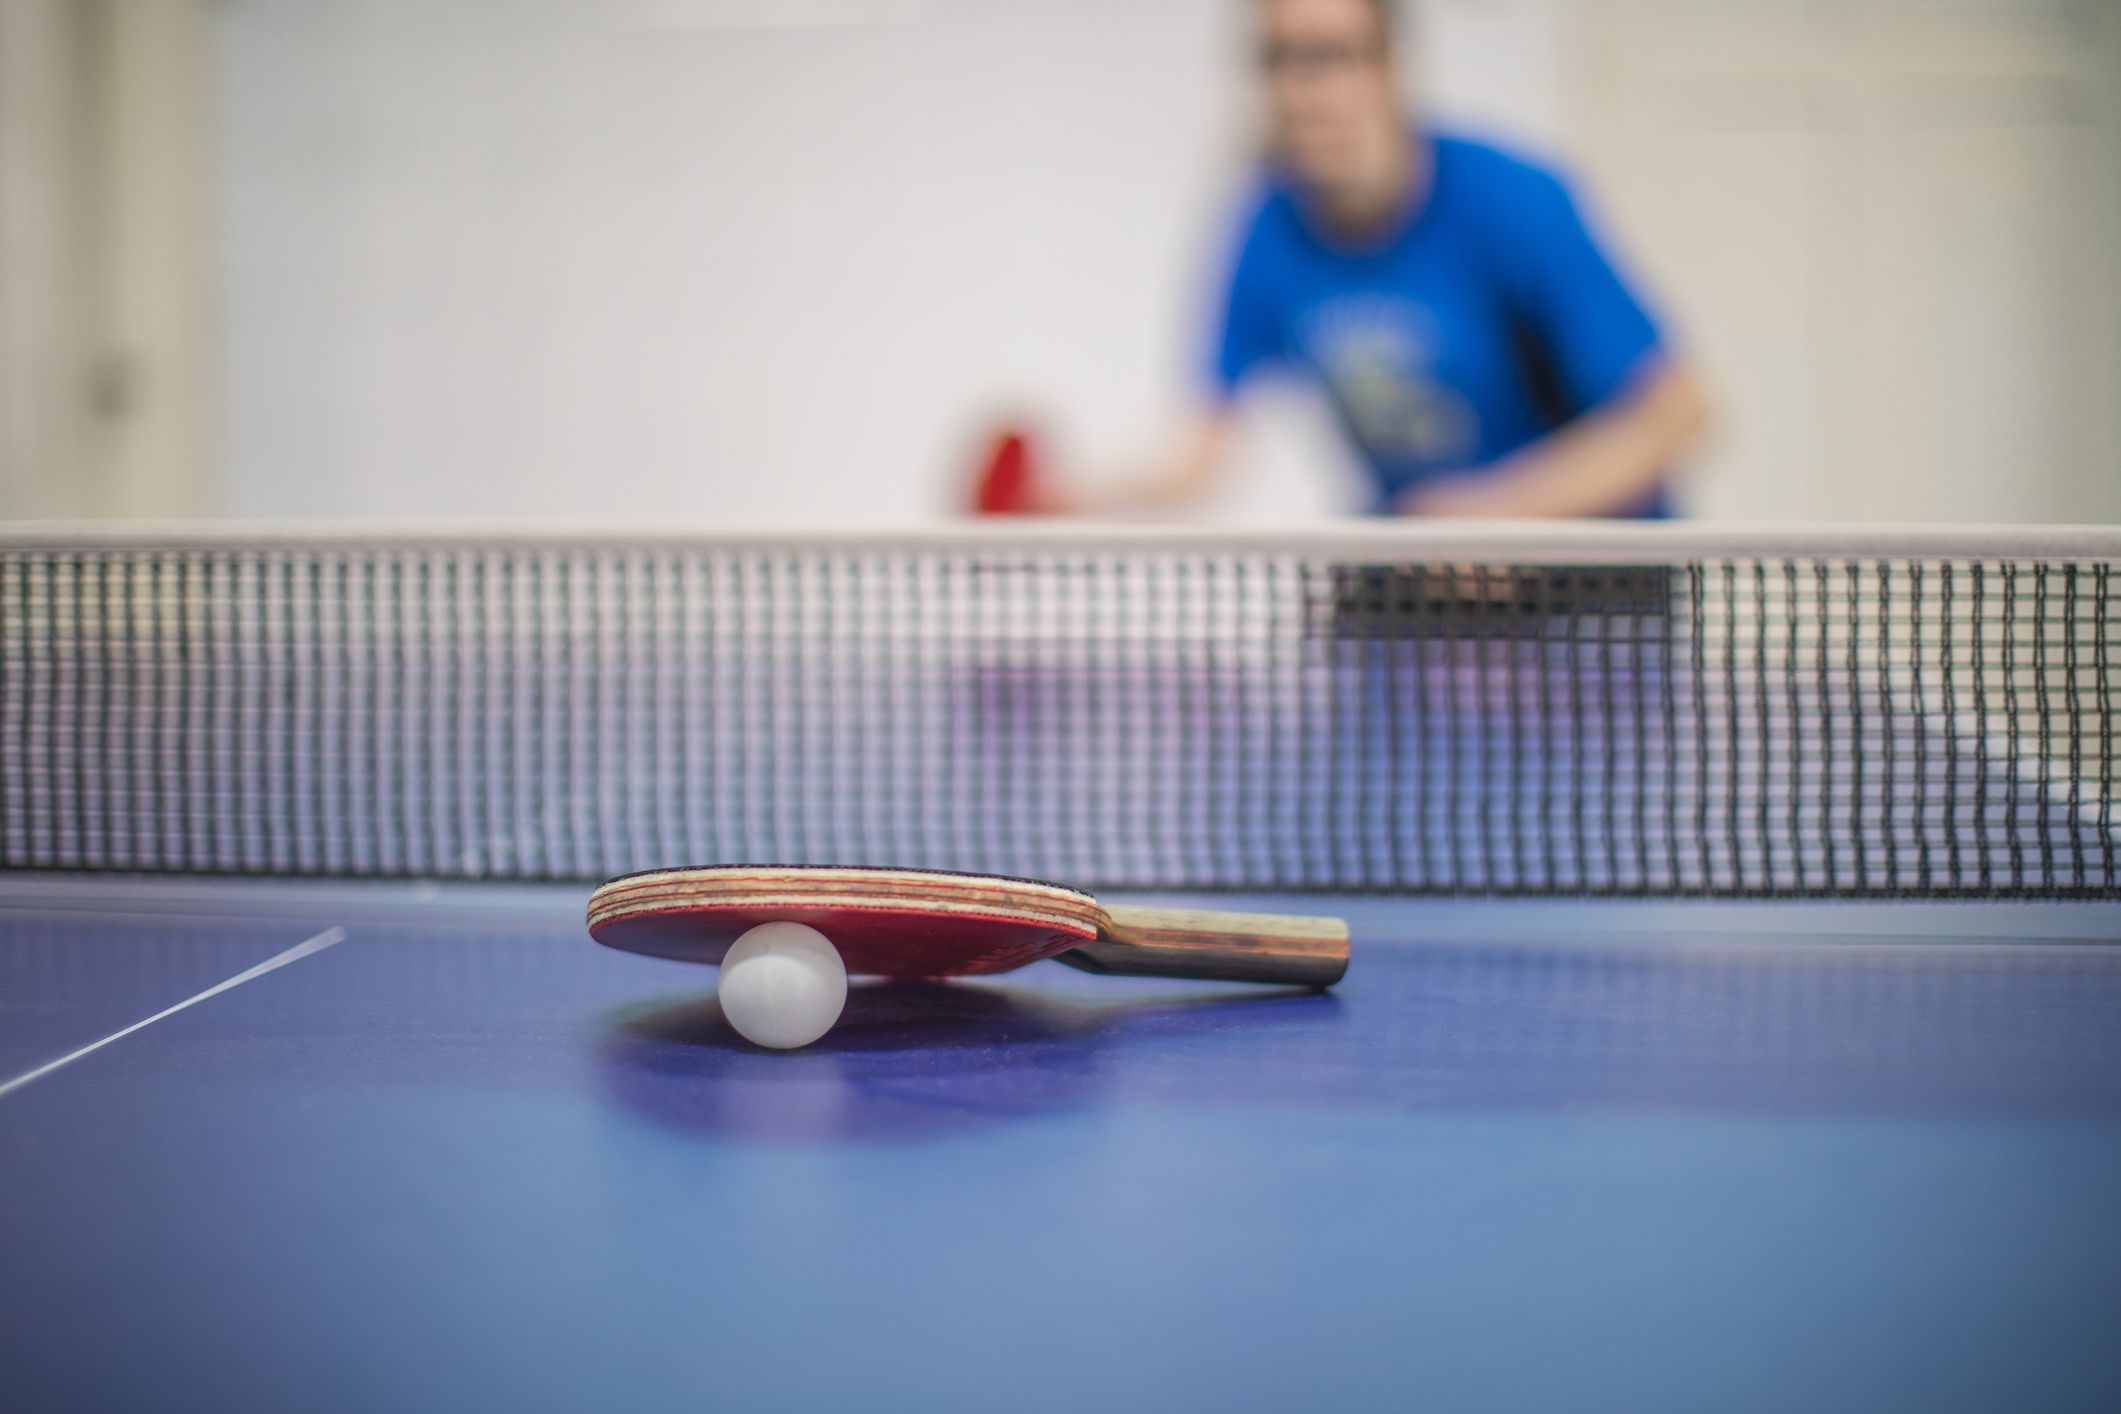 The 7 Best Ping Pong Paddles of 2019